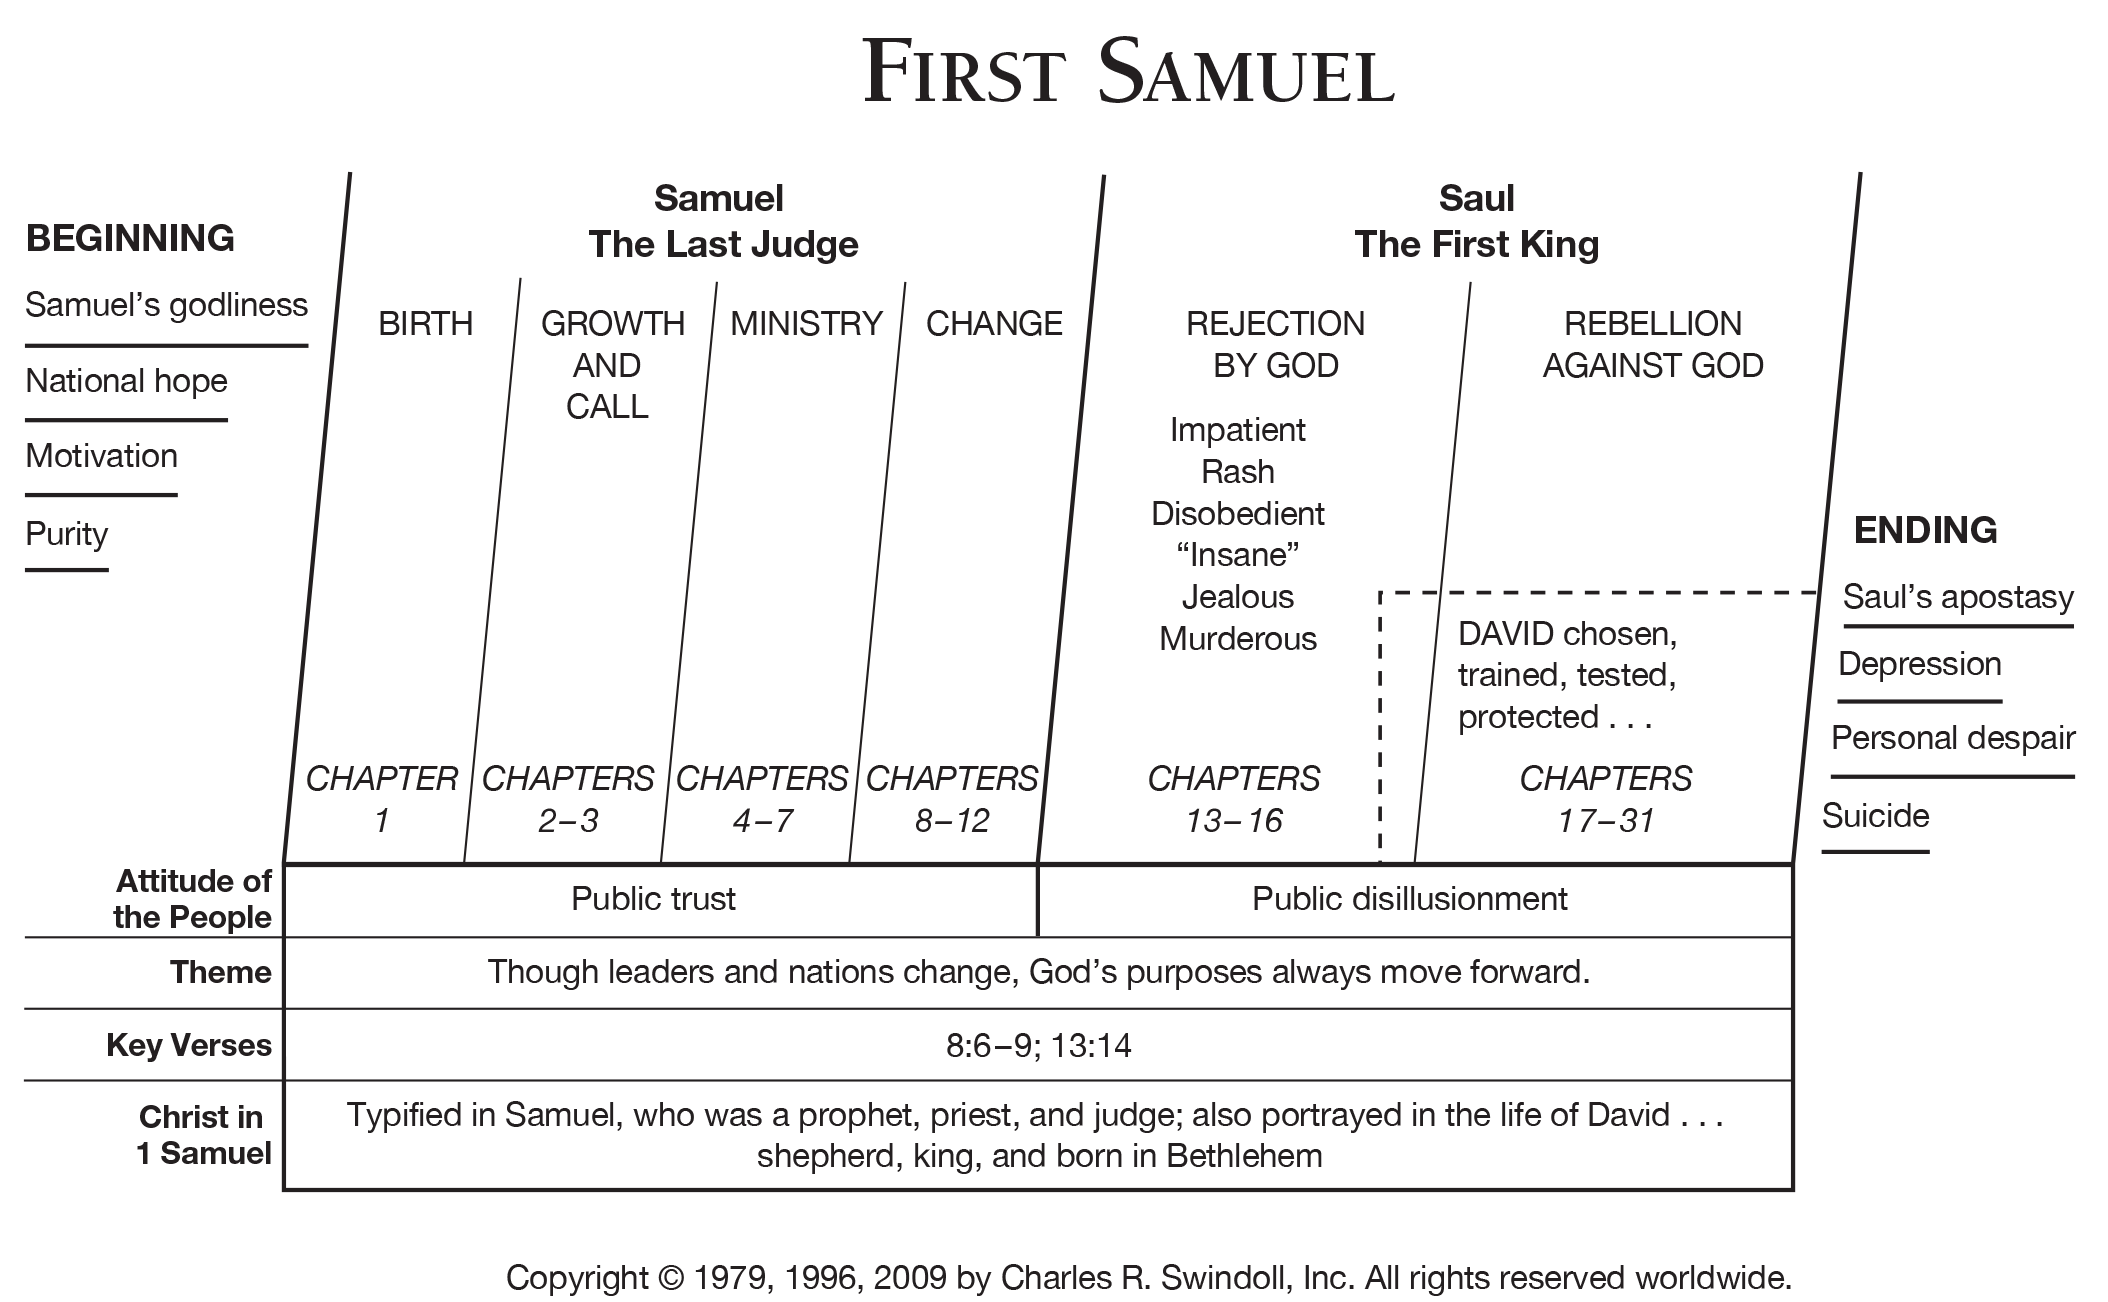 Book Of First Samuel Overview